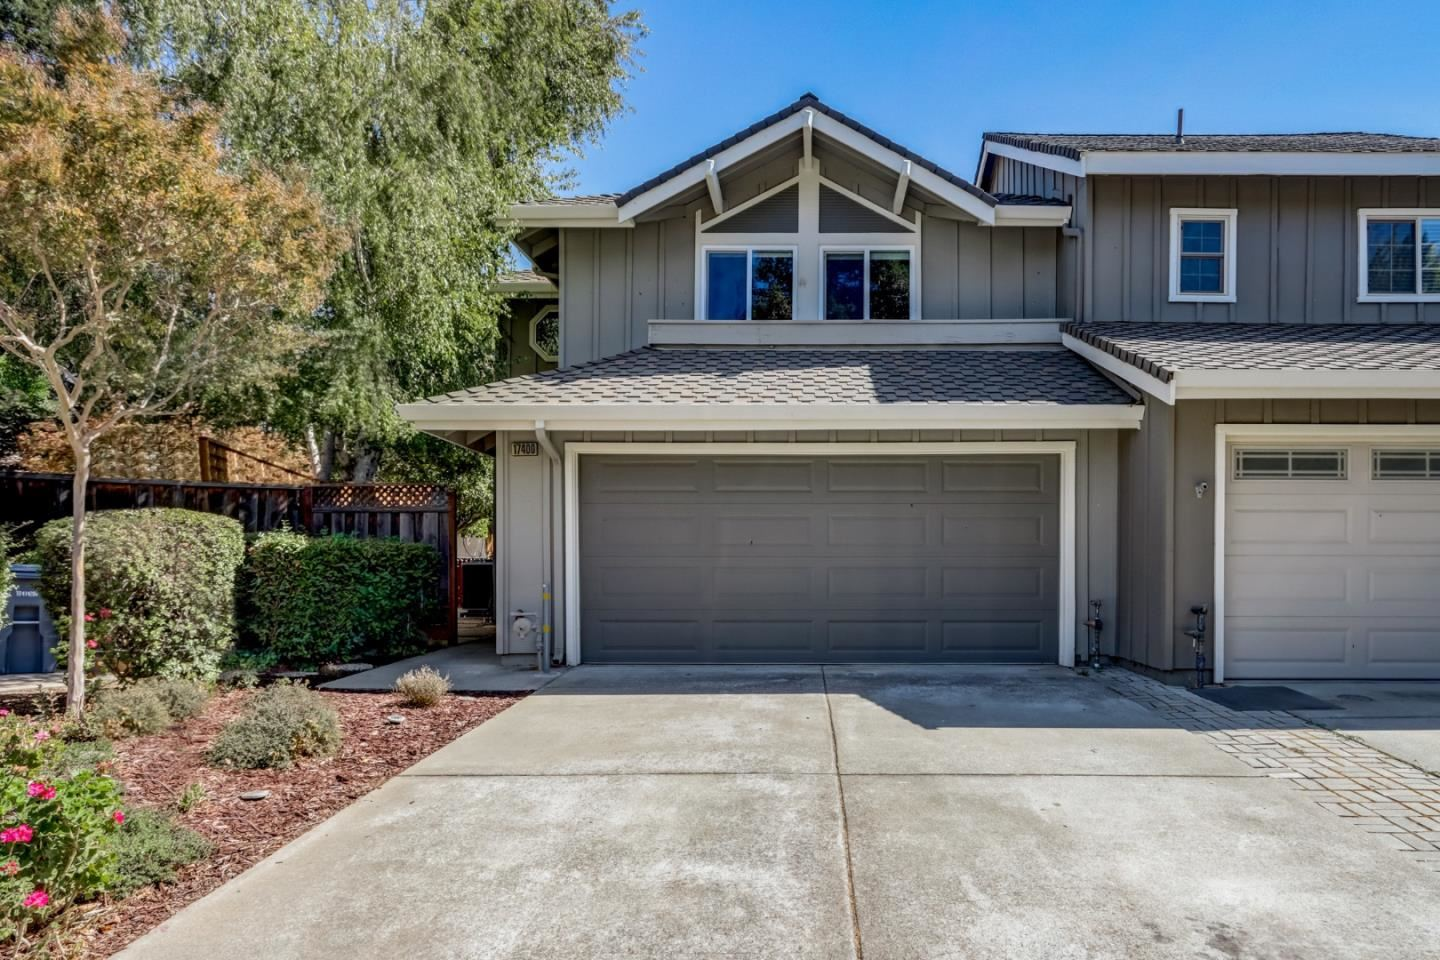 Photo for 17400 Carriage Lamp Way, MORGAN HILL, CA 95037 (MLS # ML81865955)